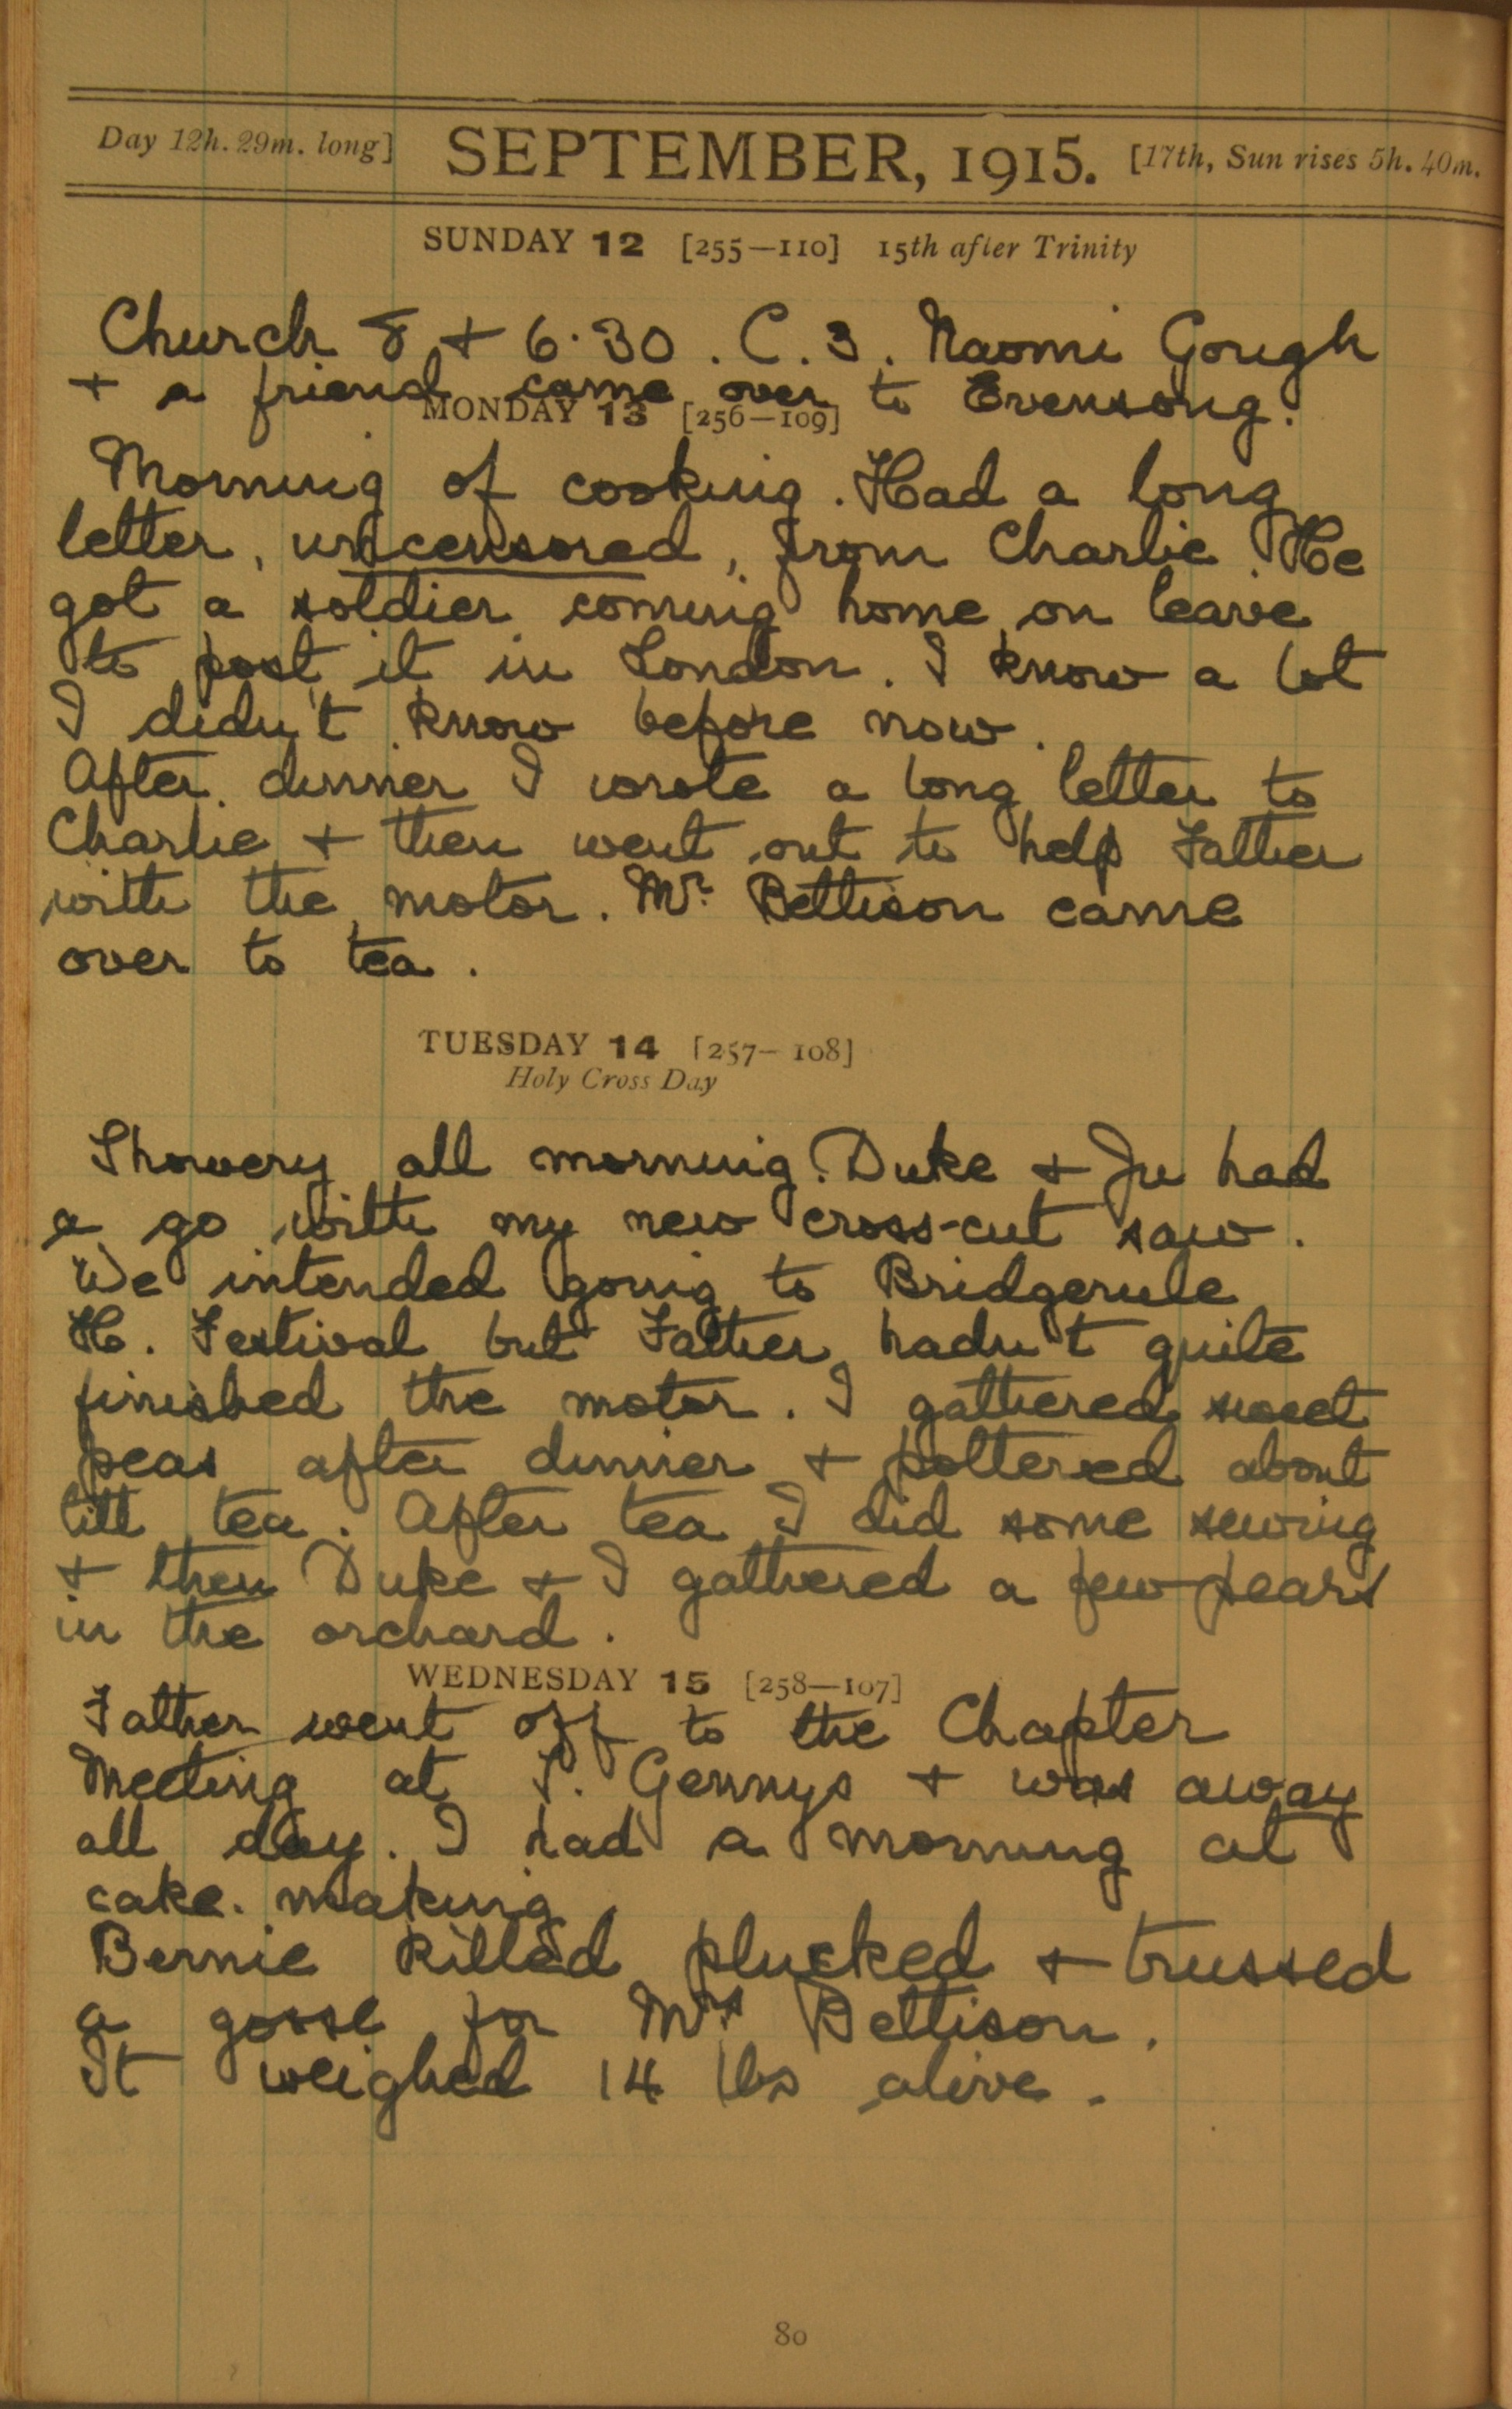 Entry from 13th September 1915, reads 'Morning of cooking. Had a long letter, uncensored, from Charlie. He got a soldier coming home on leave to post it in London. I know a lot I didn't know before now. ...'